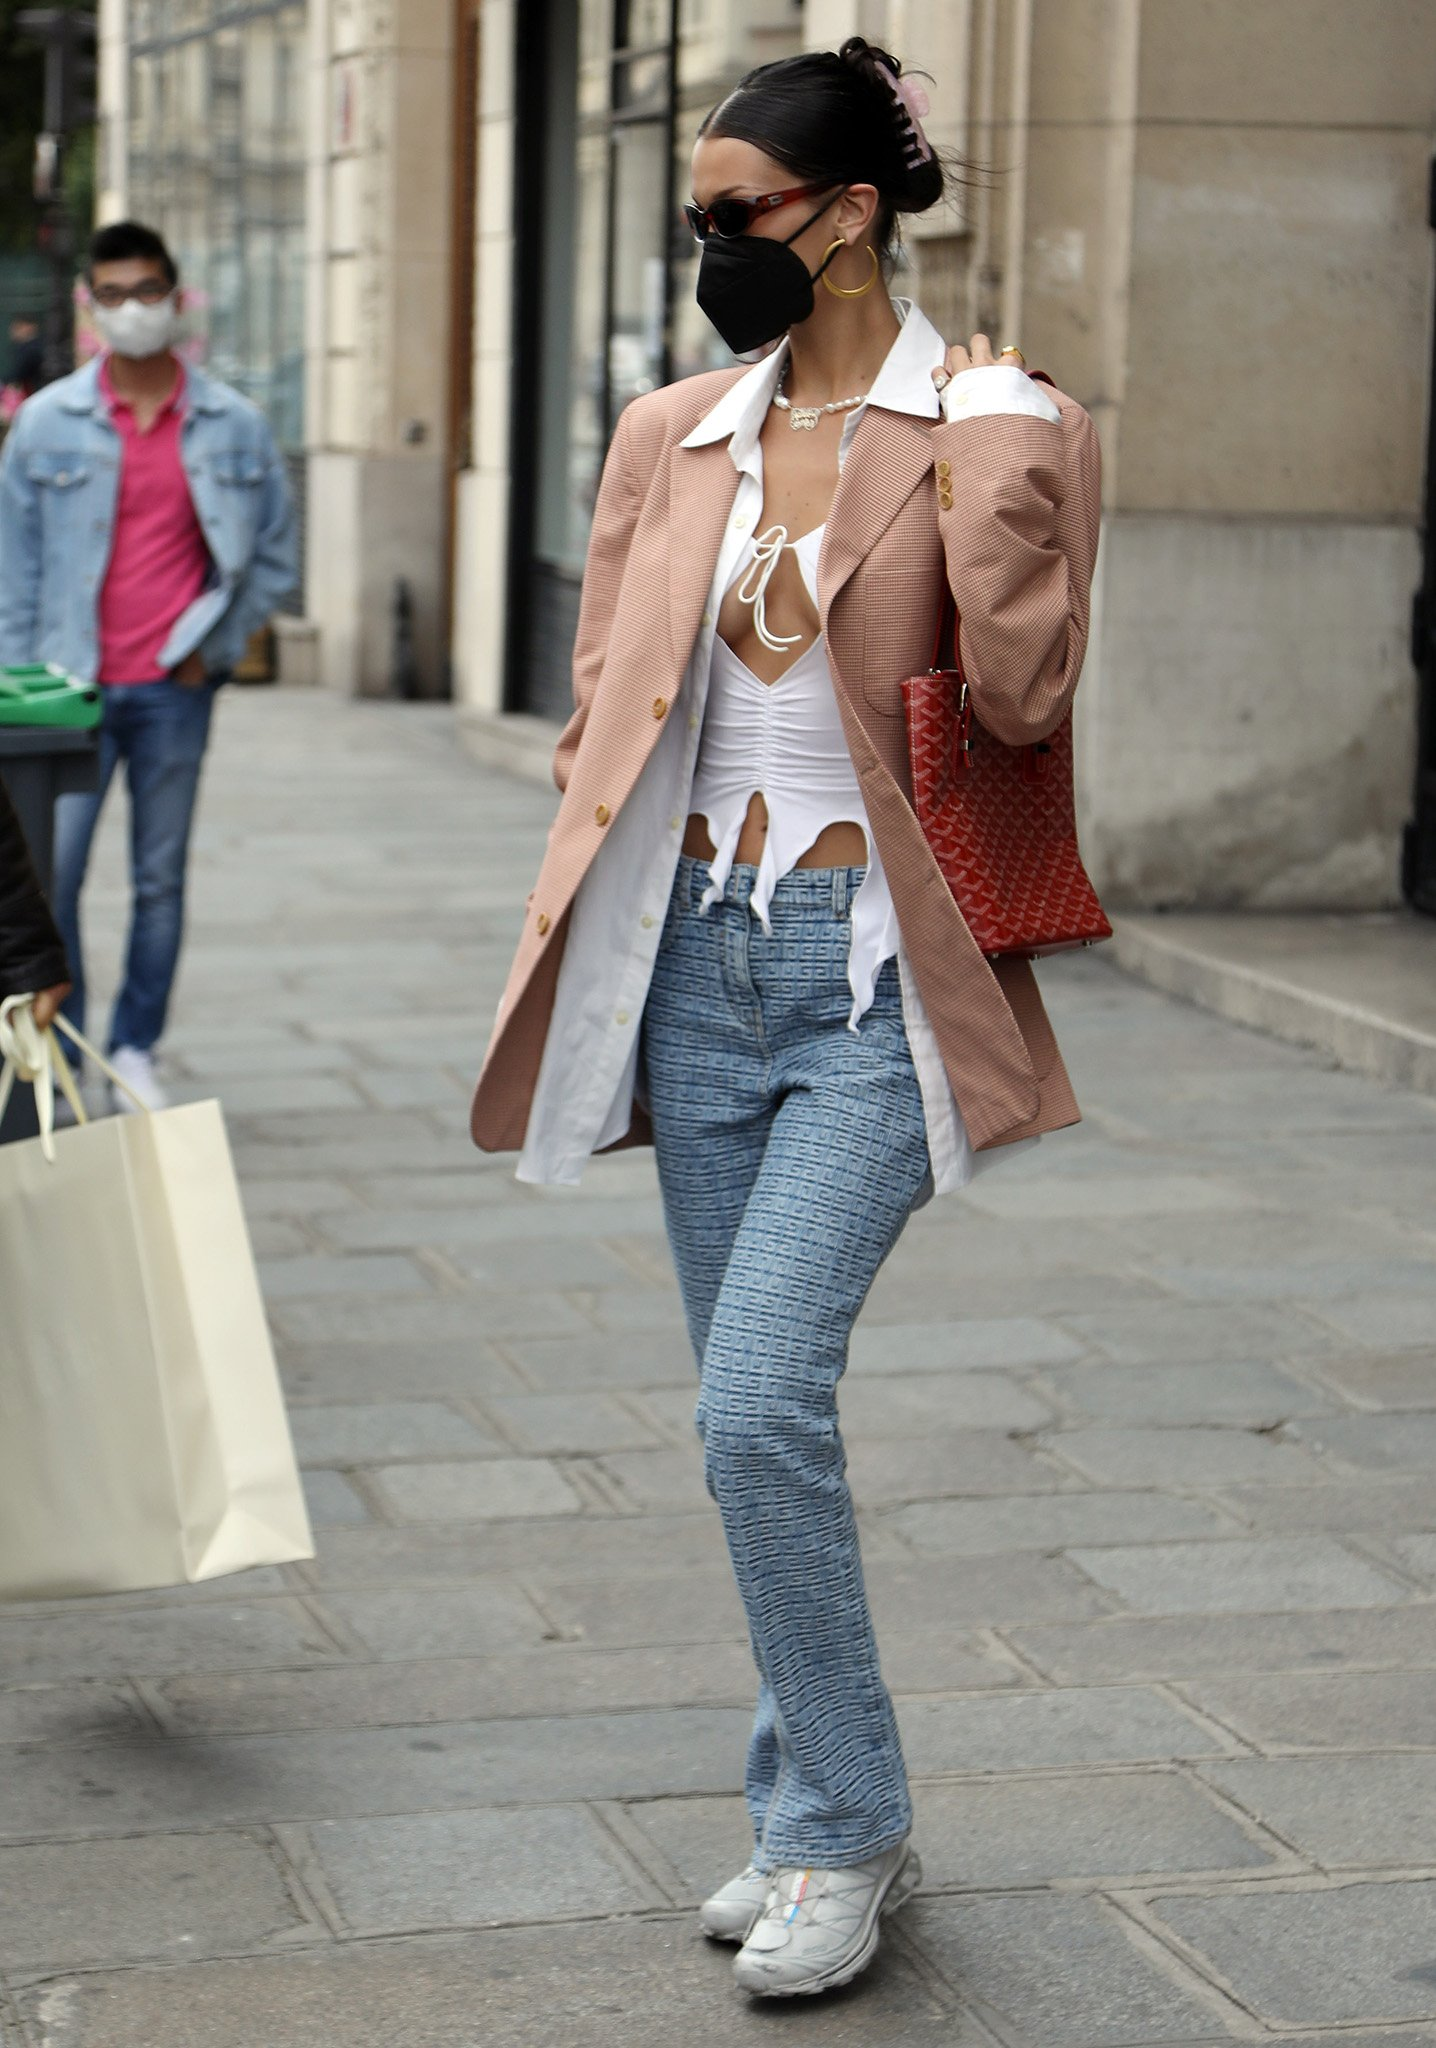 Bella Hadid goes shopping at The Broken Arm and at Jean-Paul Gaultier stores in Paris on July 1, 2021